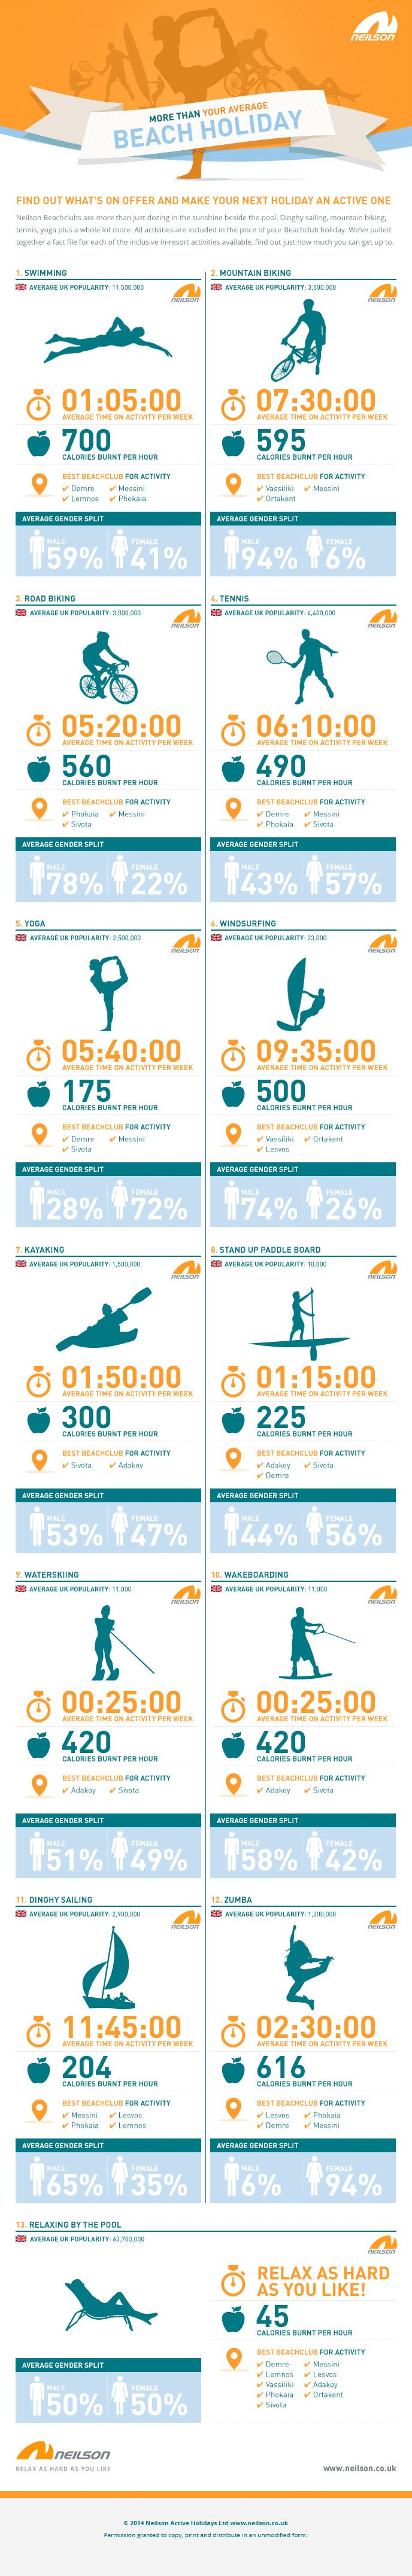 Have a look to see all the stats behind Neilson Active Holiday activities!